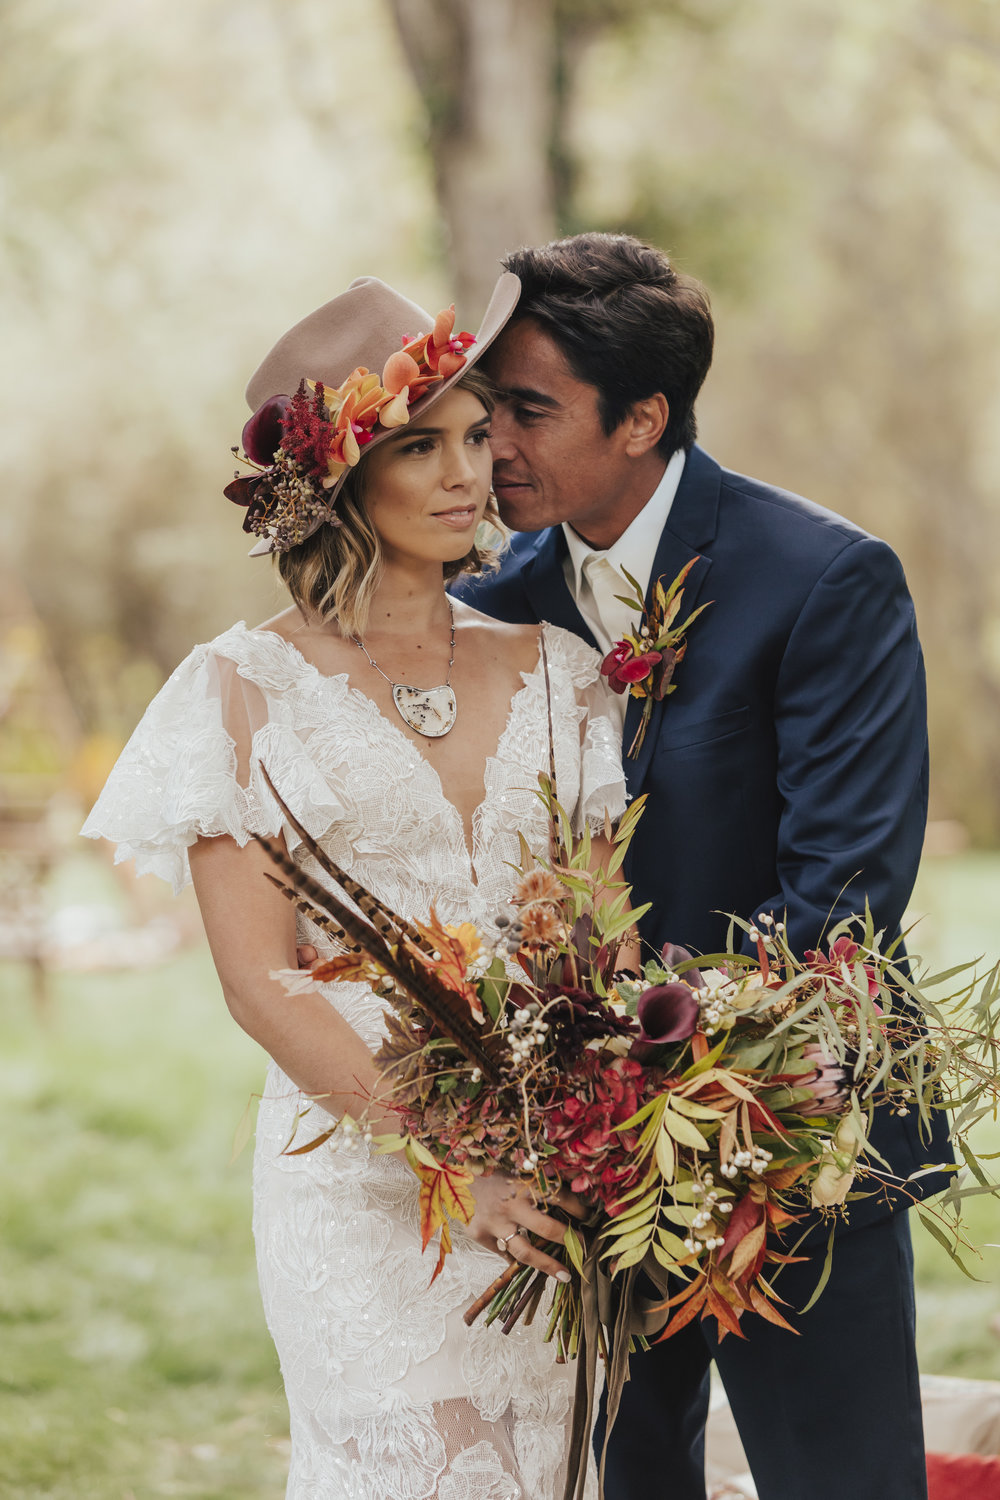 gardenerranch-willowandplum-wedding-flowers.jpg